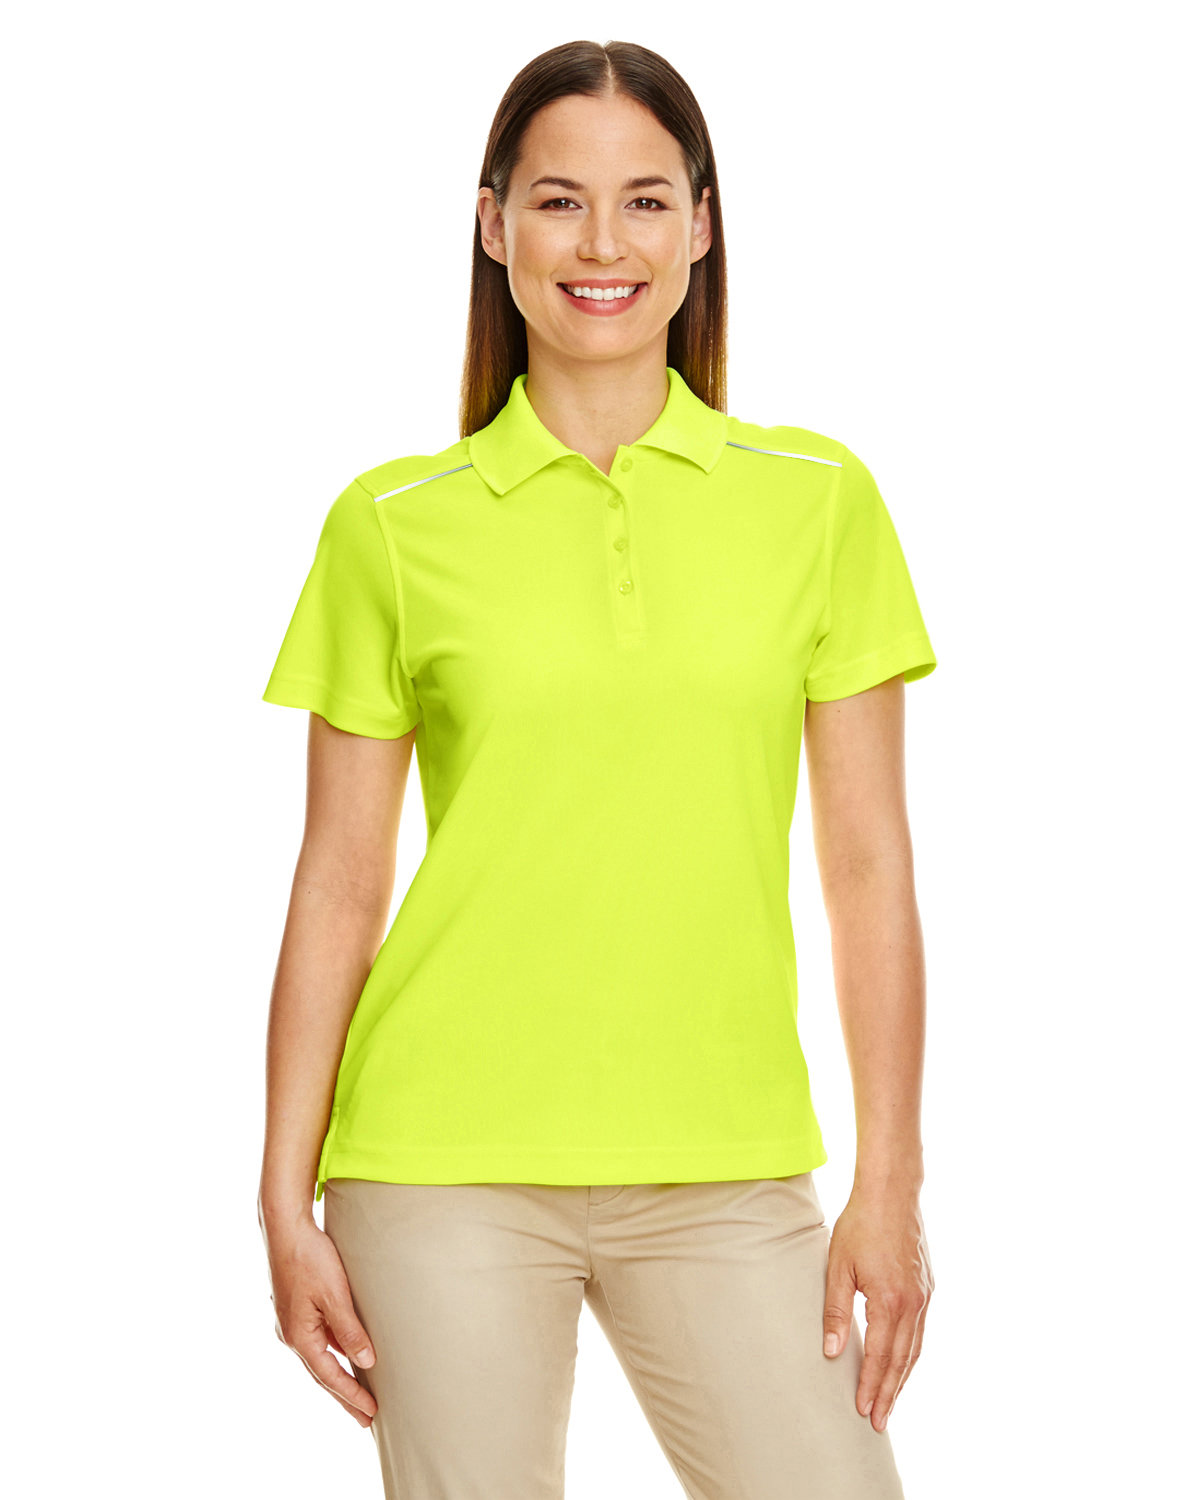 Core 365 Ladies' Radiant Performance Piqué Polo with Reflective Piping SAFETY YELLOW